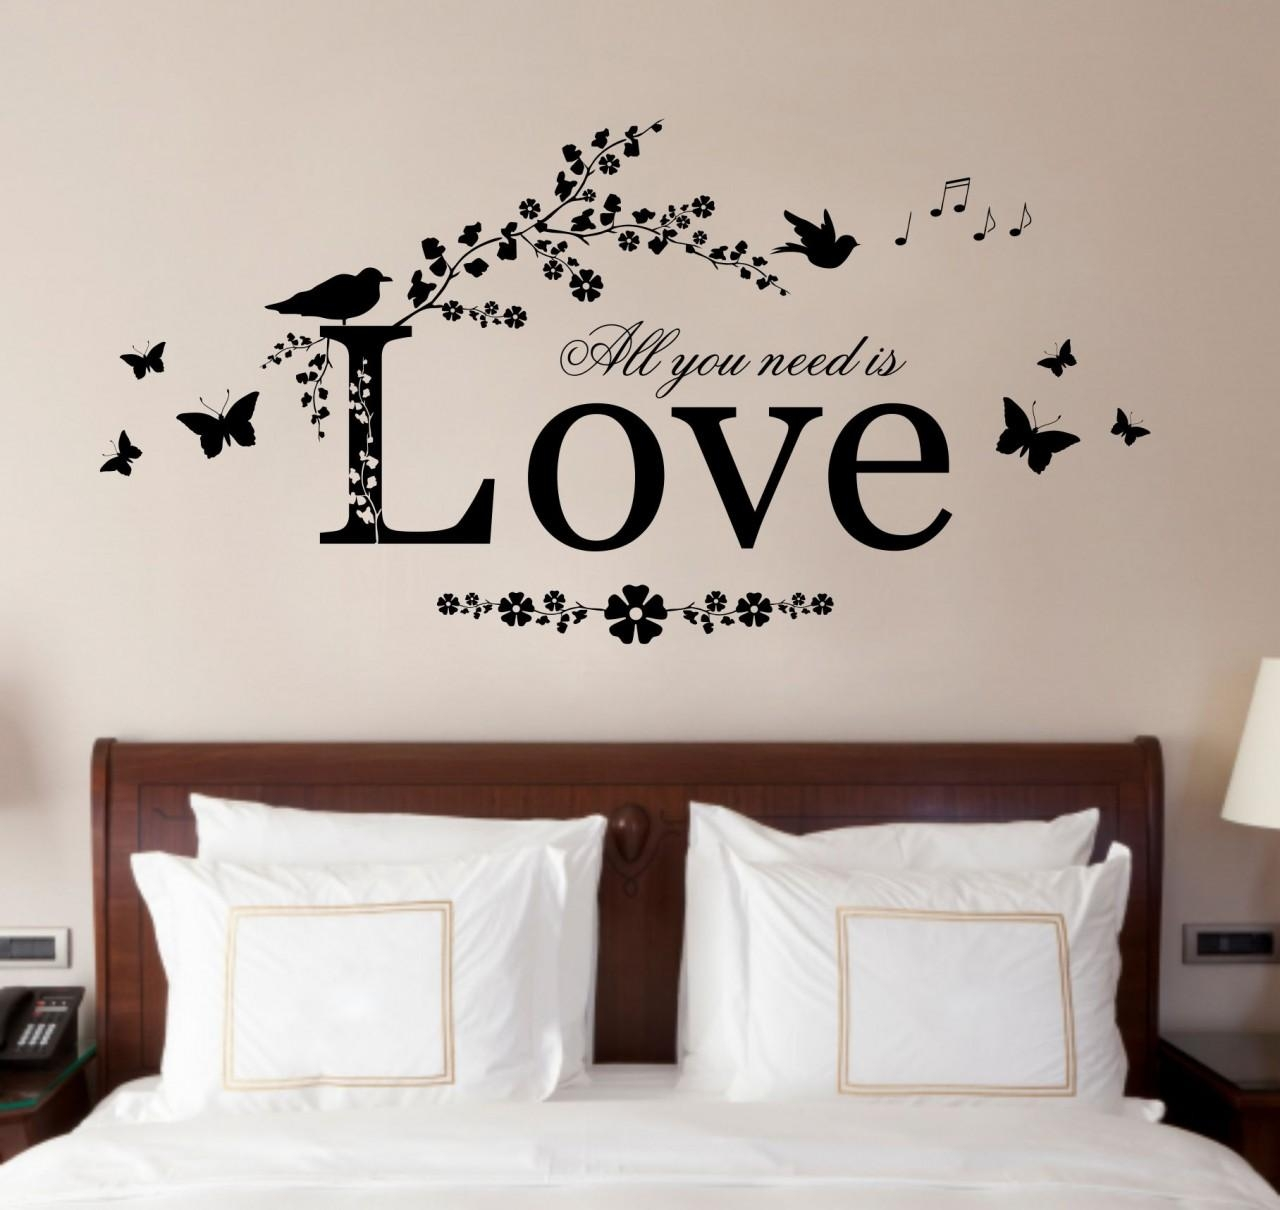 Bedroom Wall Art – Helpformycredit In Bedroom Wall Art (View 5 of 20)